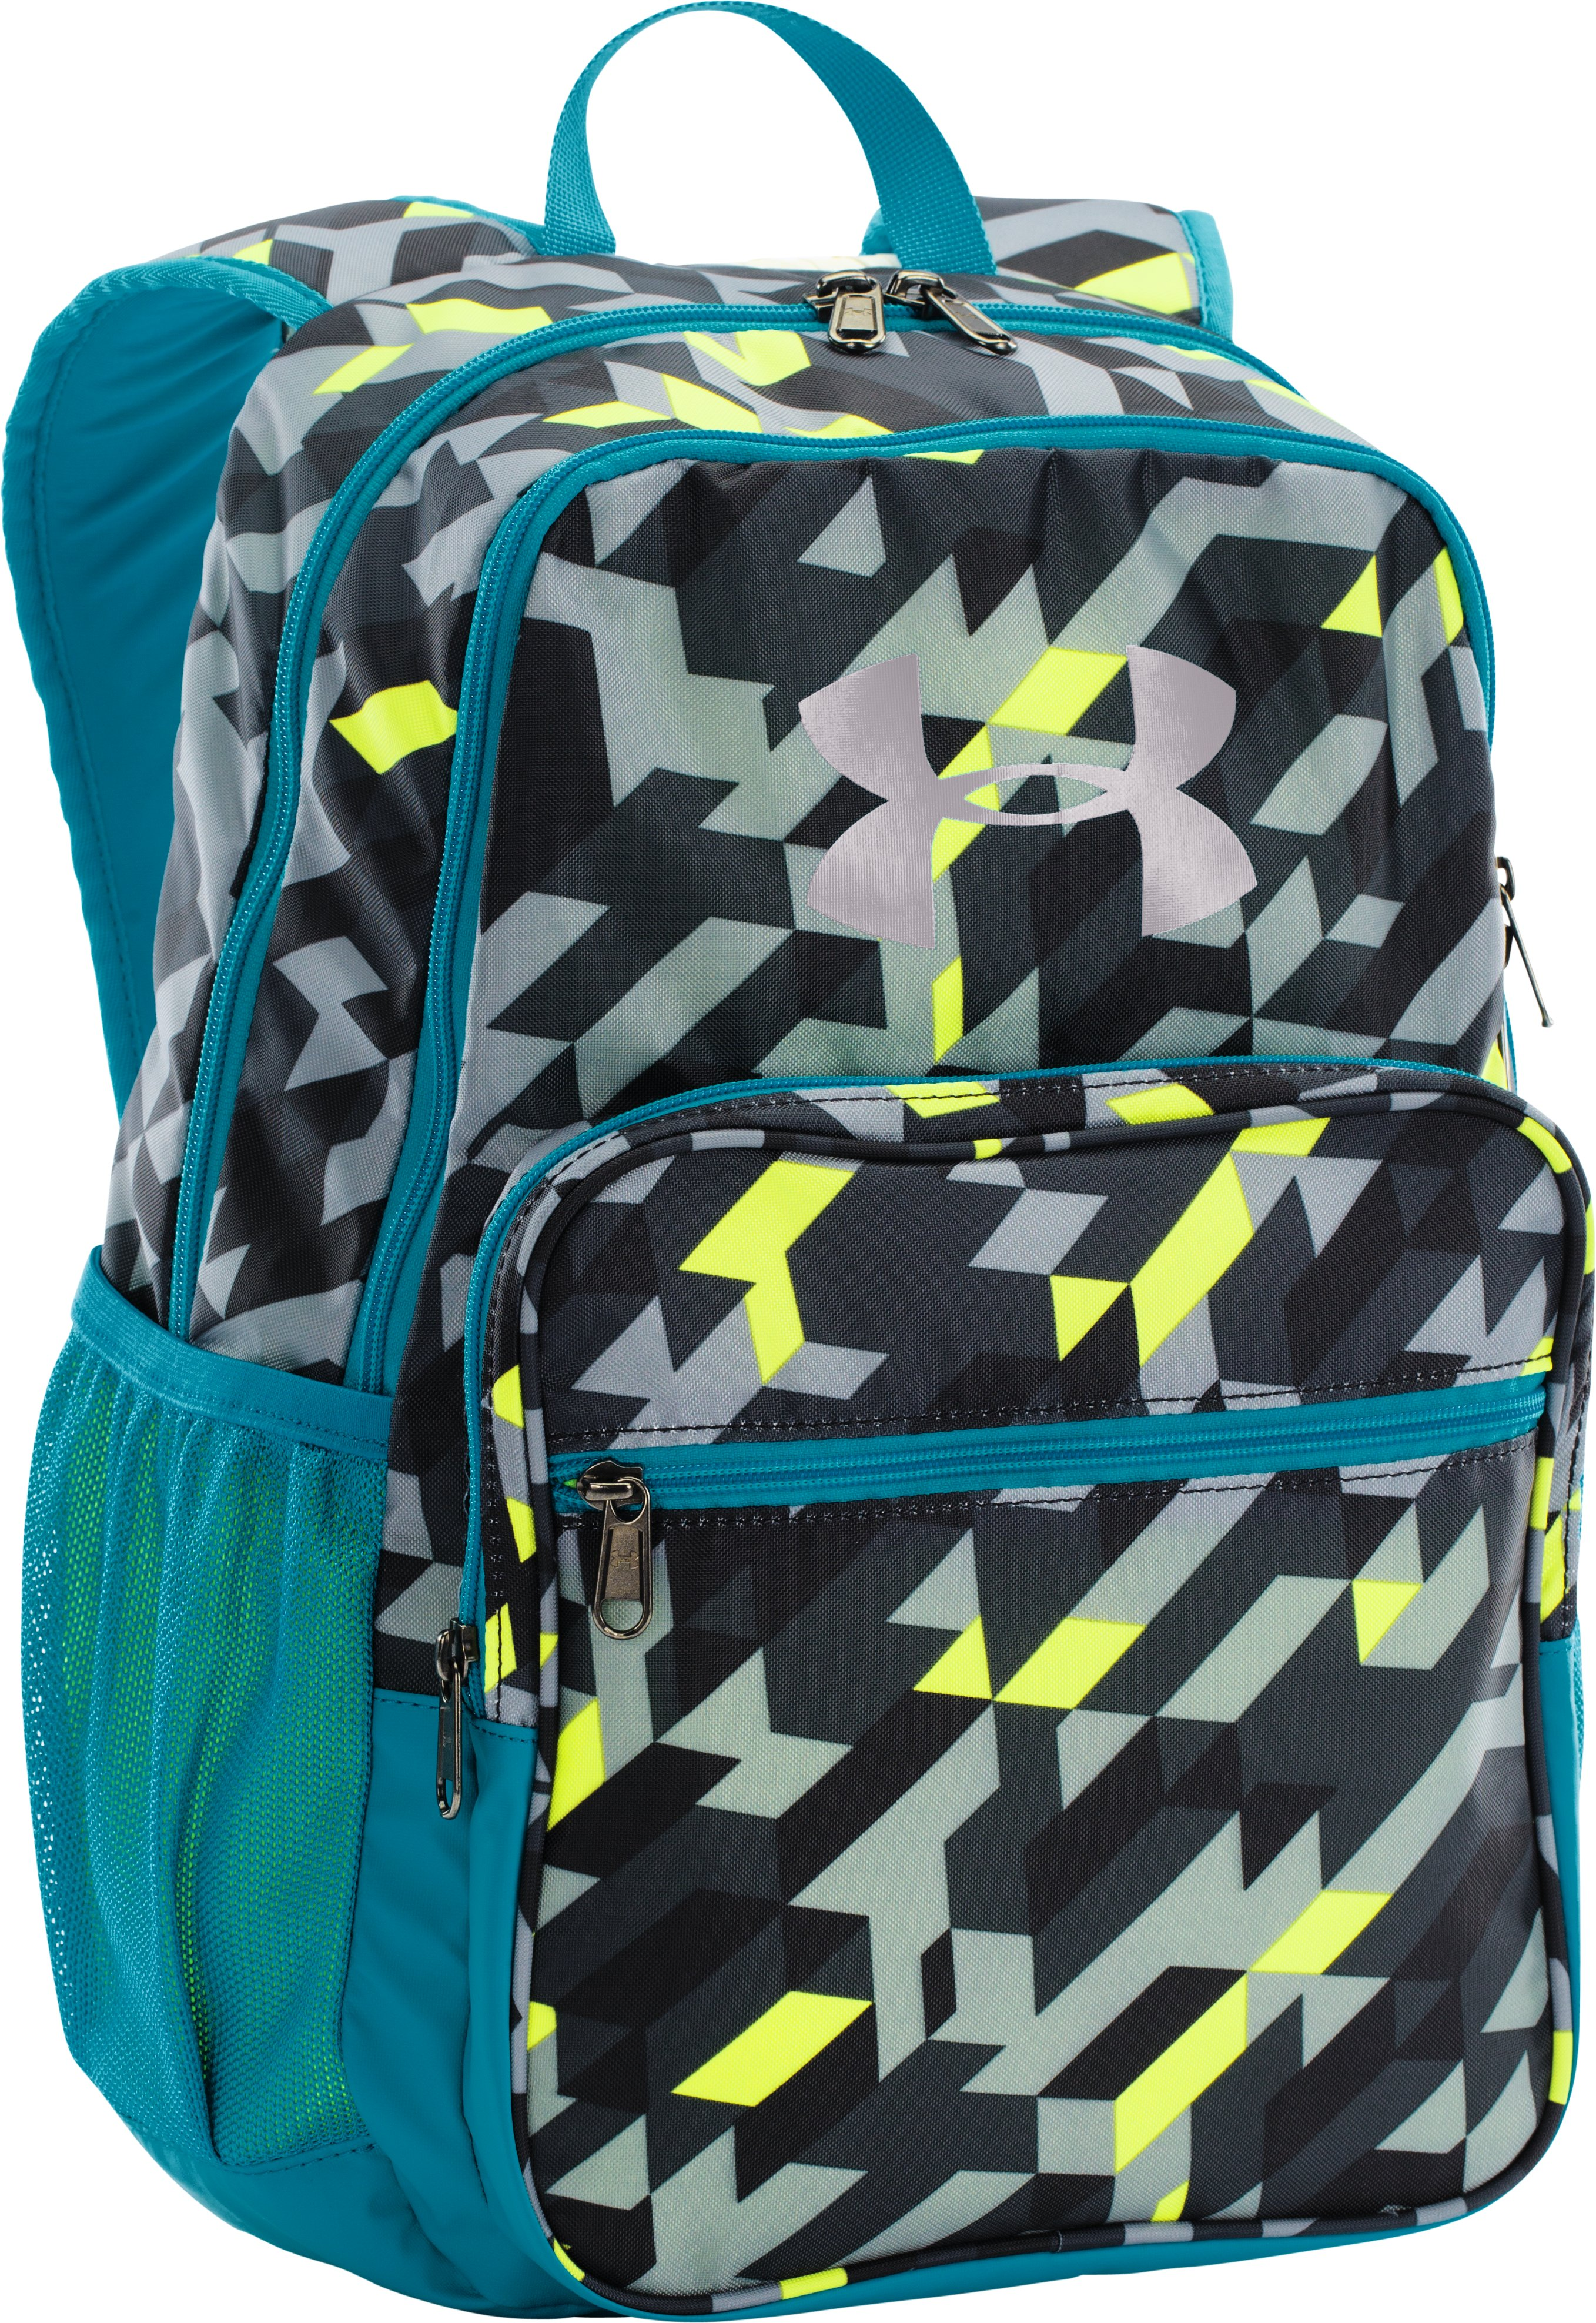 Boys Backpacks & School Bags. Check out the school bags, carryalls and backpacks to secure your boy's essentials. We've got all the top brands he loves like adidas, Nike and more.